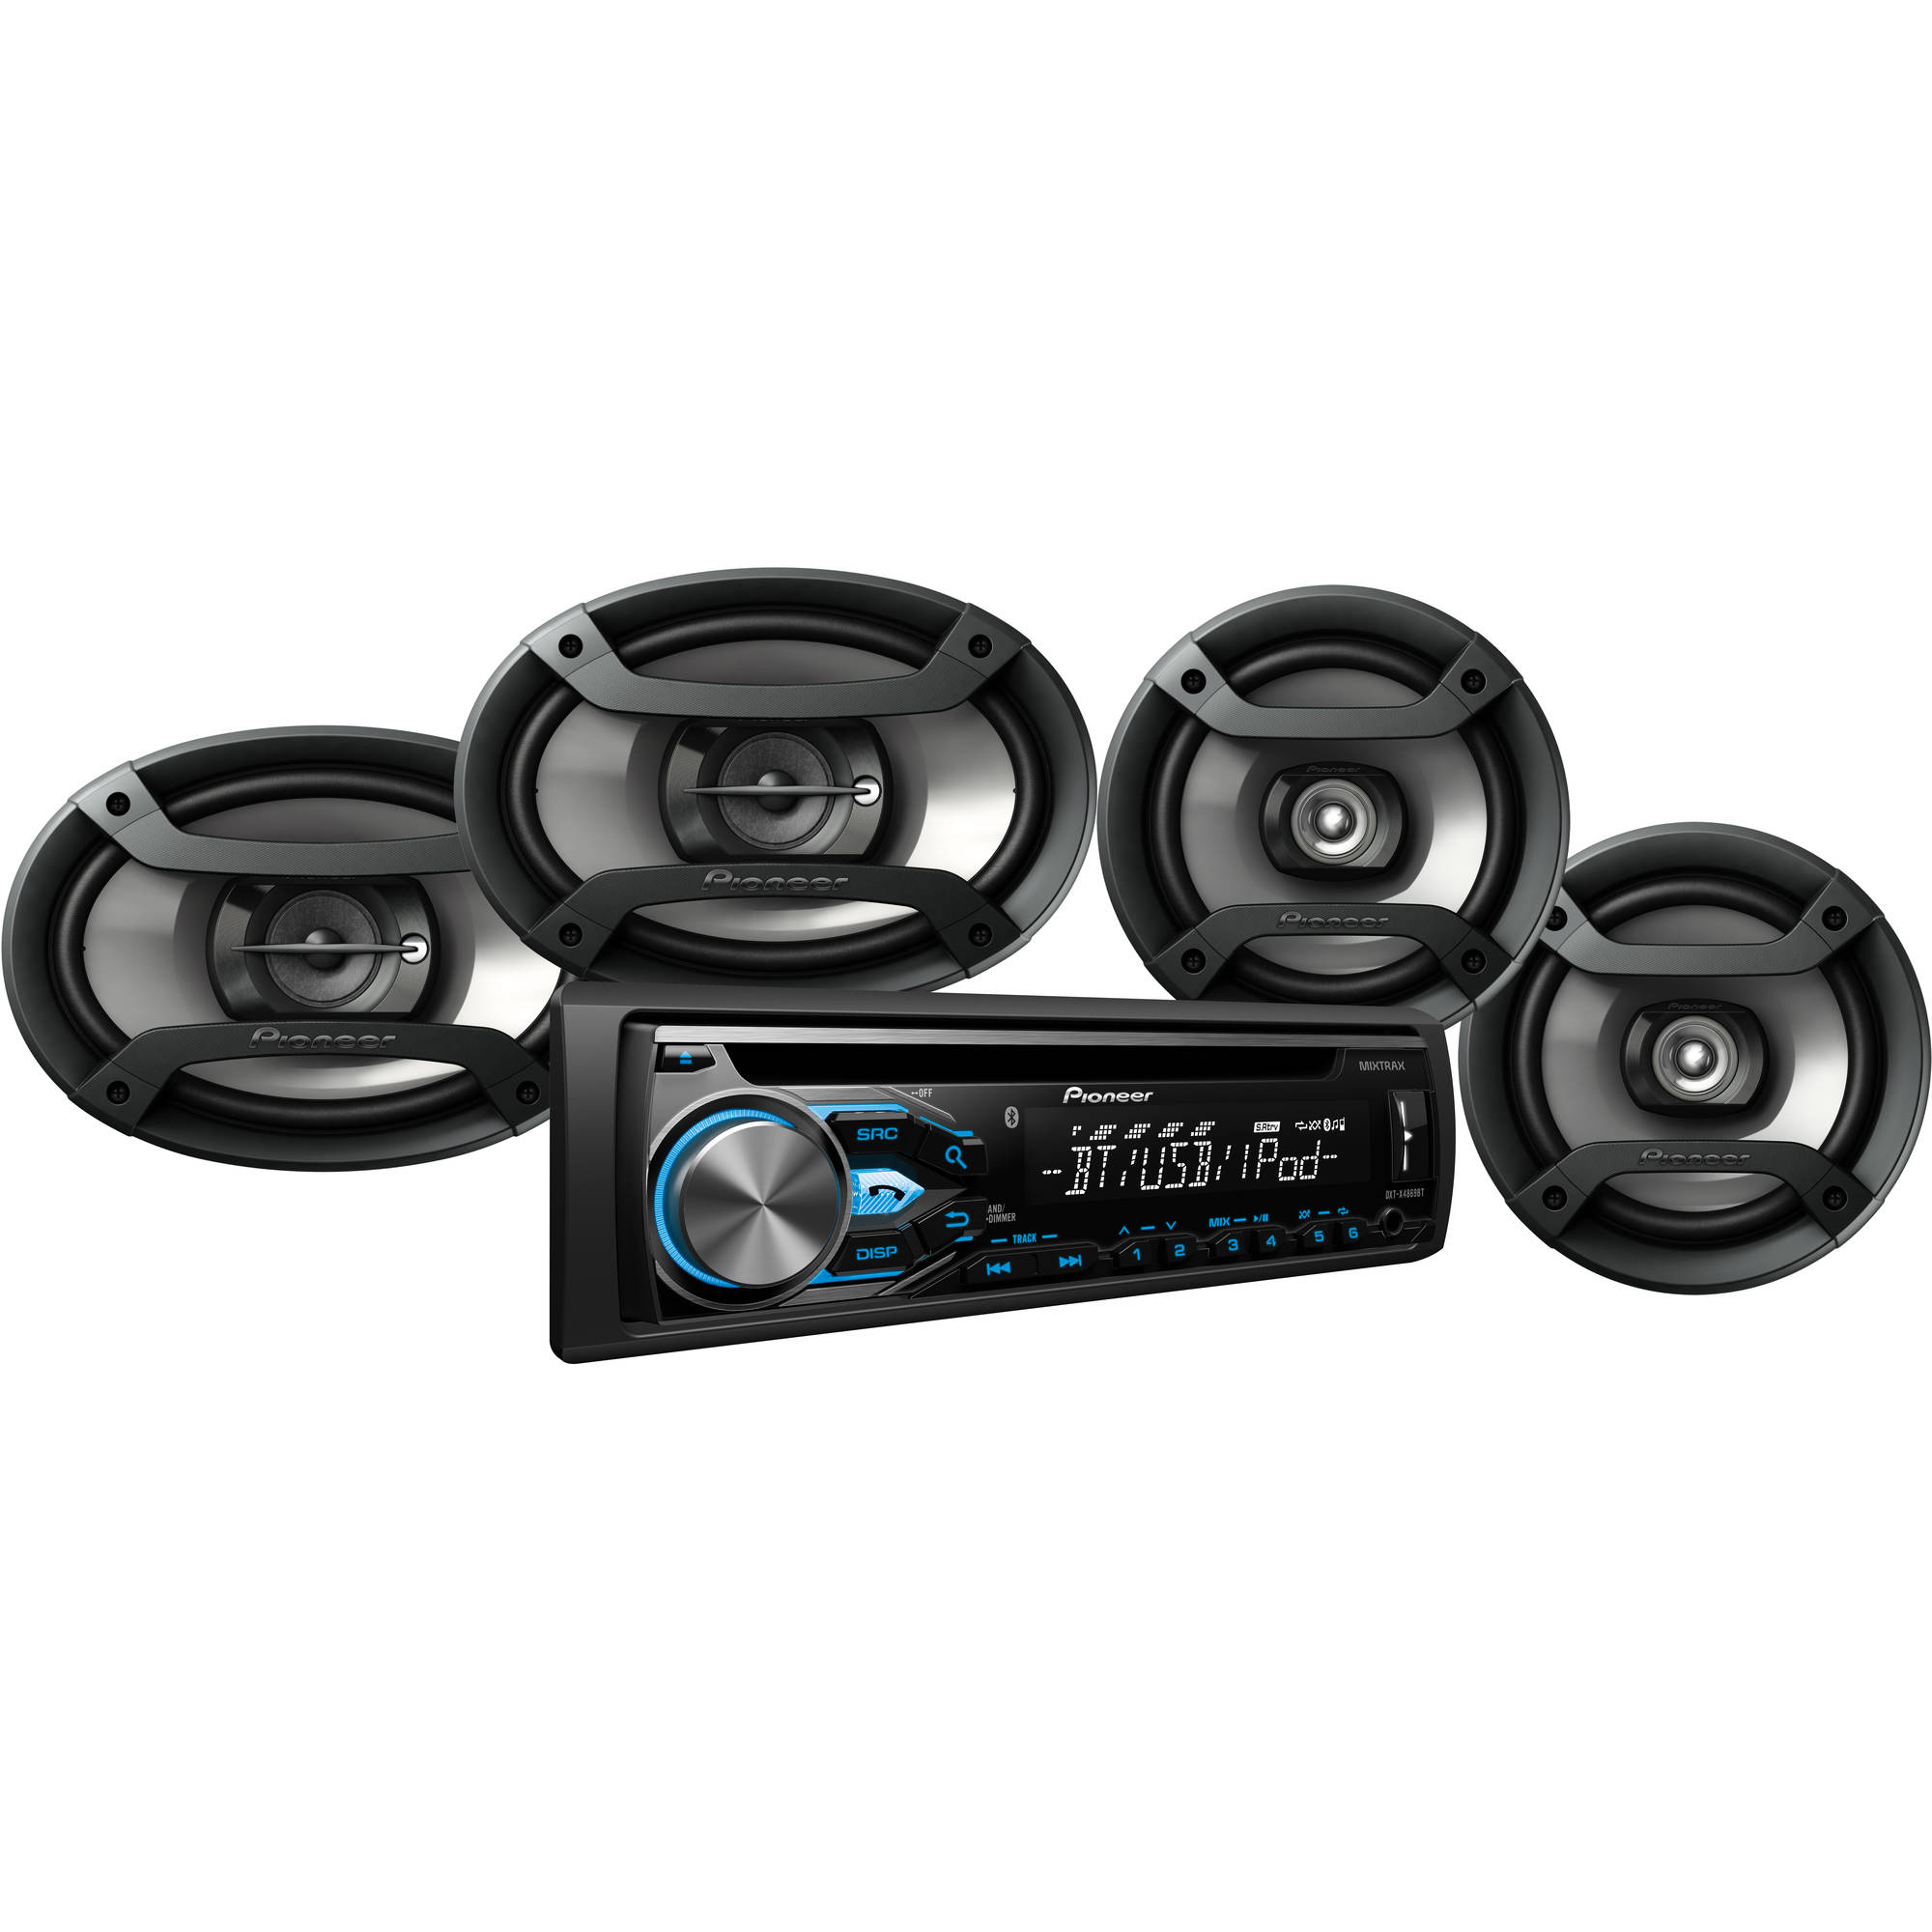 Dual bluetooth car stereo walmart